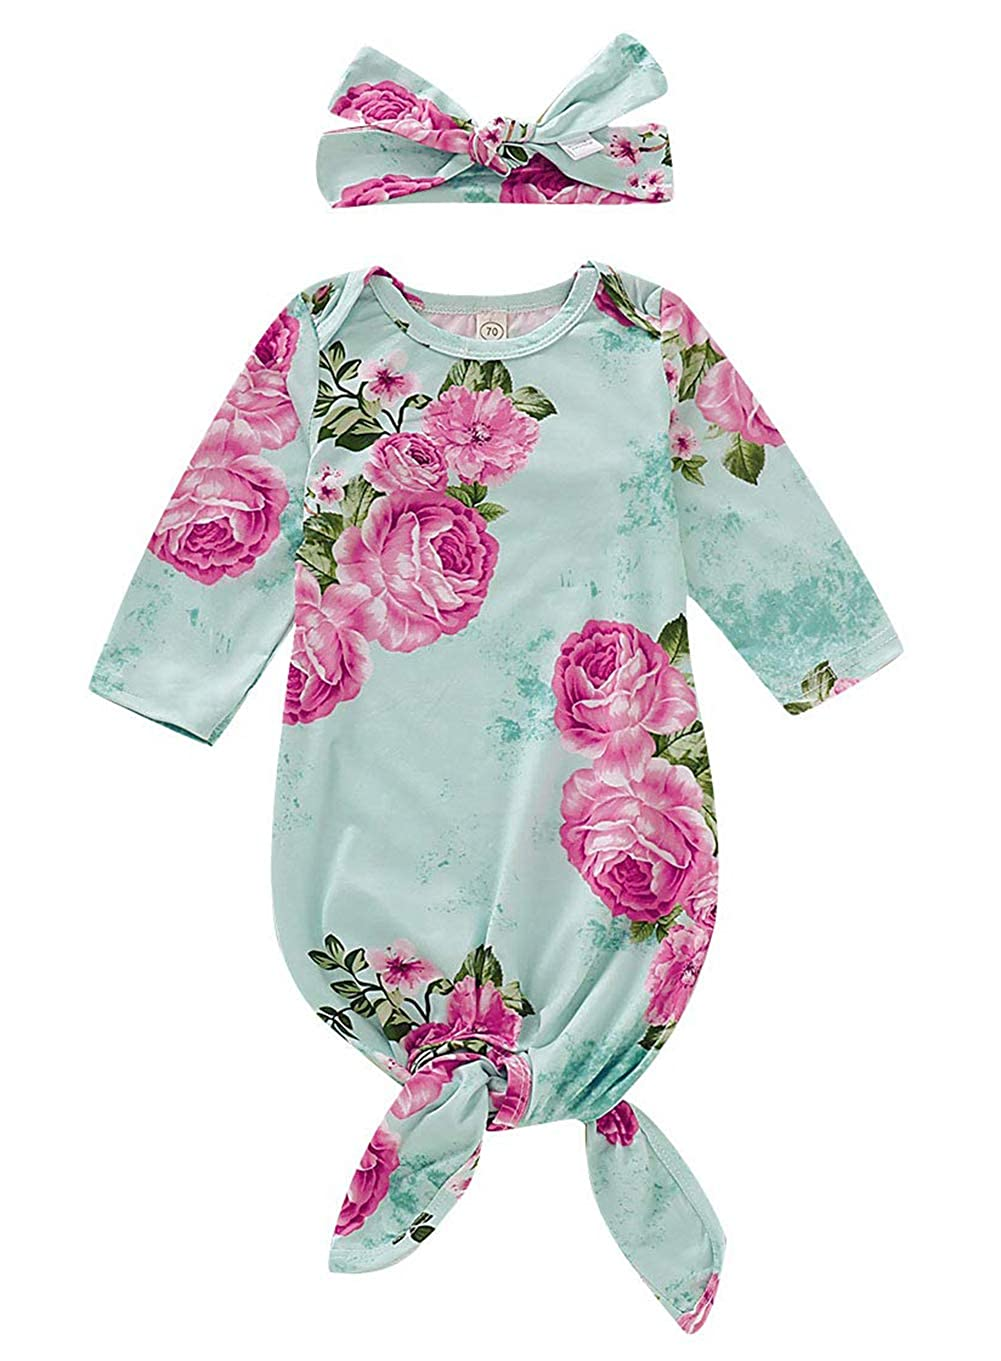 Newborn Baby Floral Sleeping Gown Swaddle Sack Coming Home Sleepwear Romper Sleeping Bags Outfit